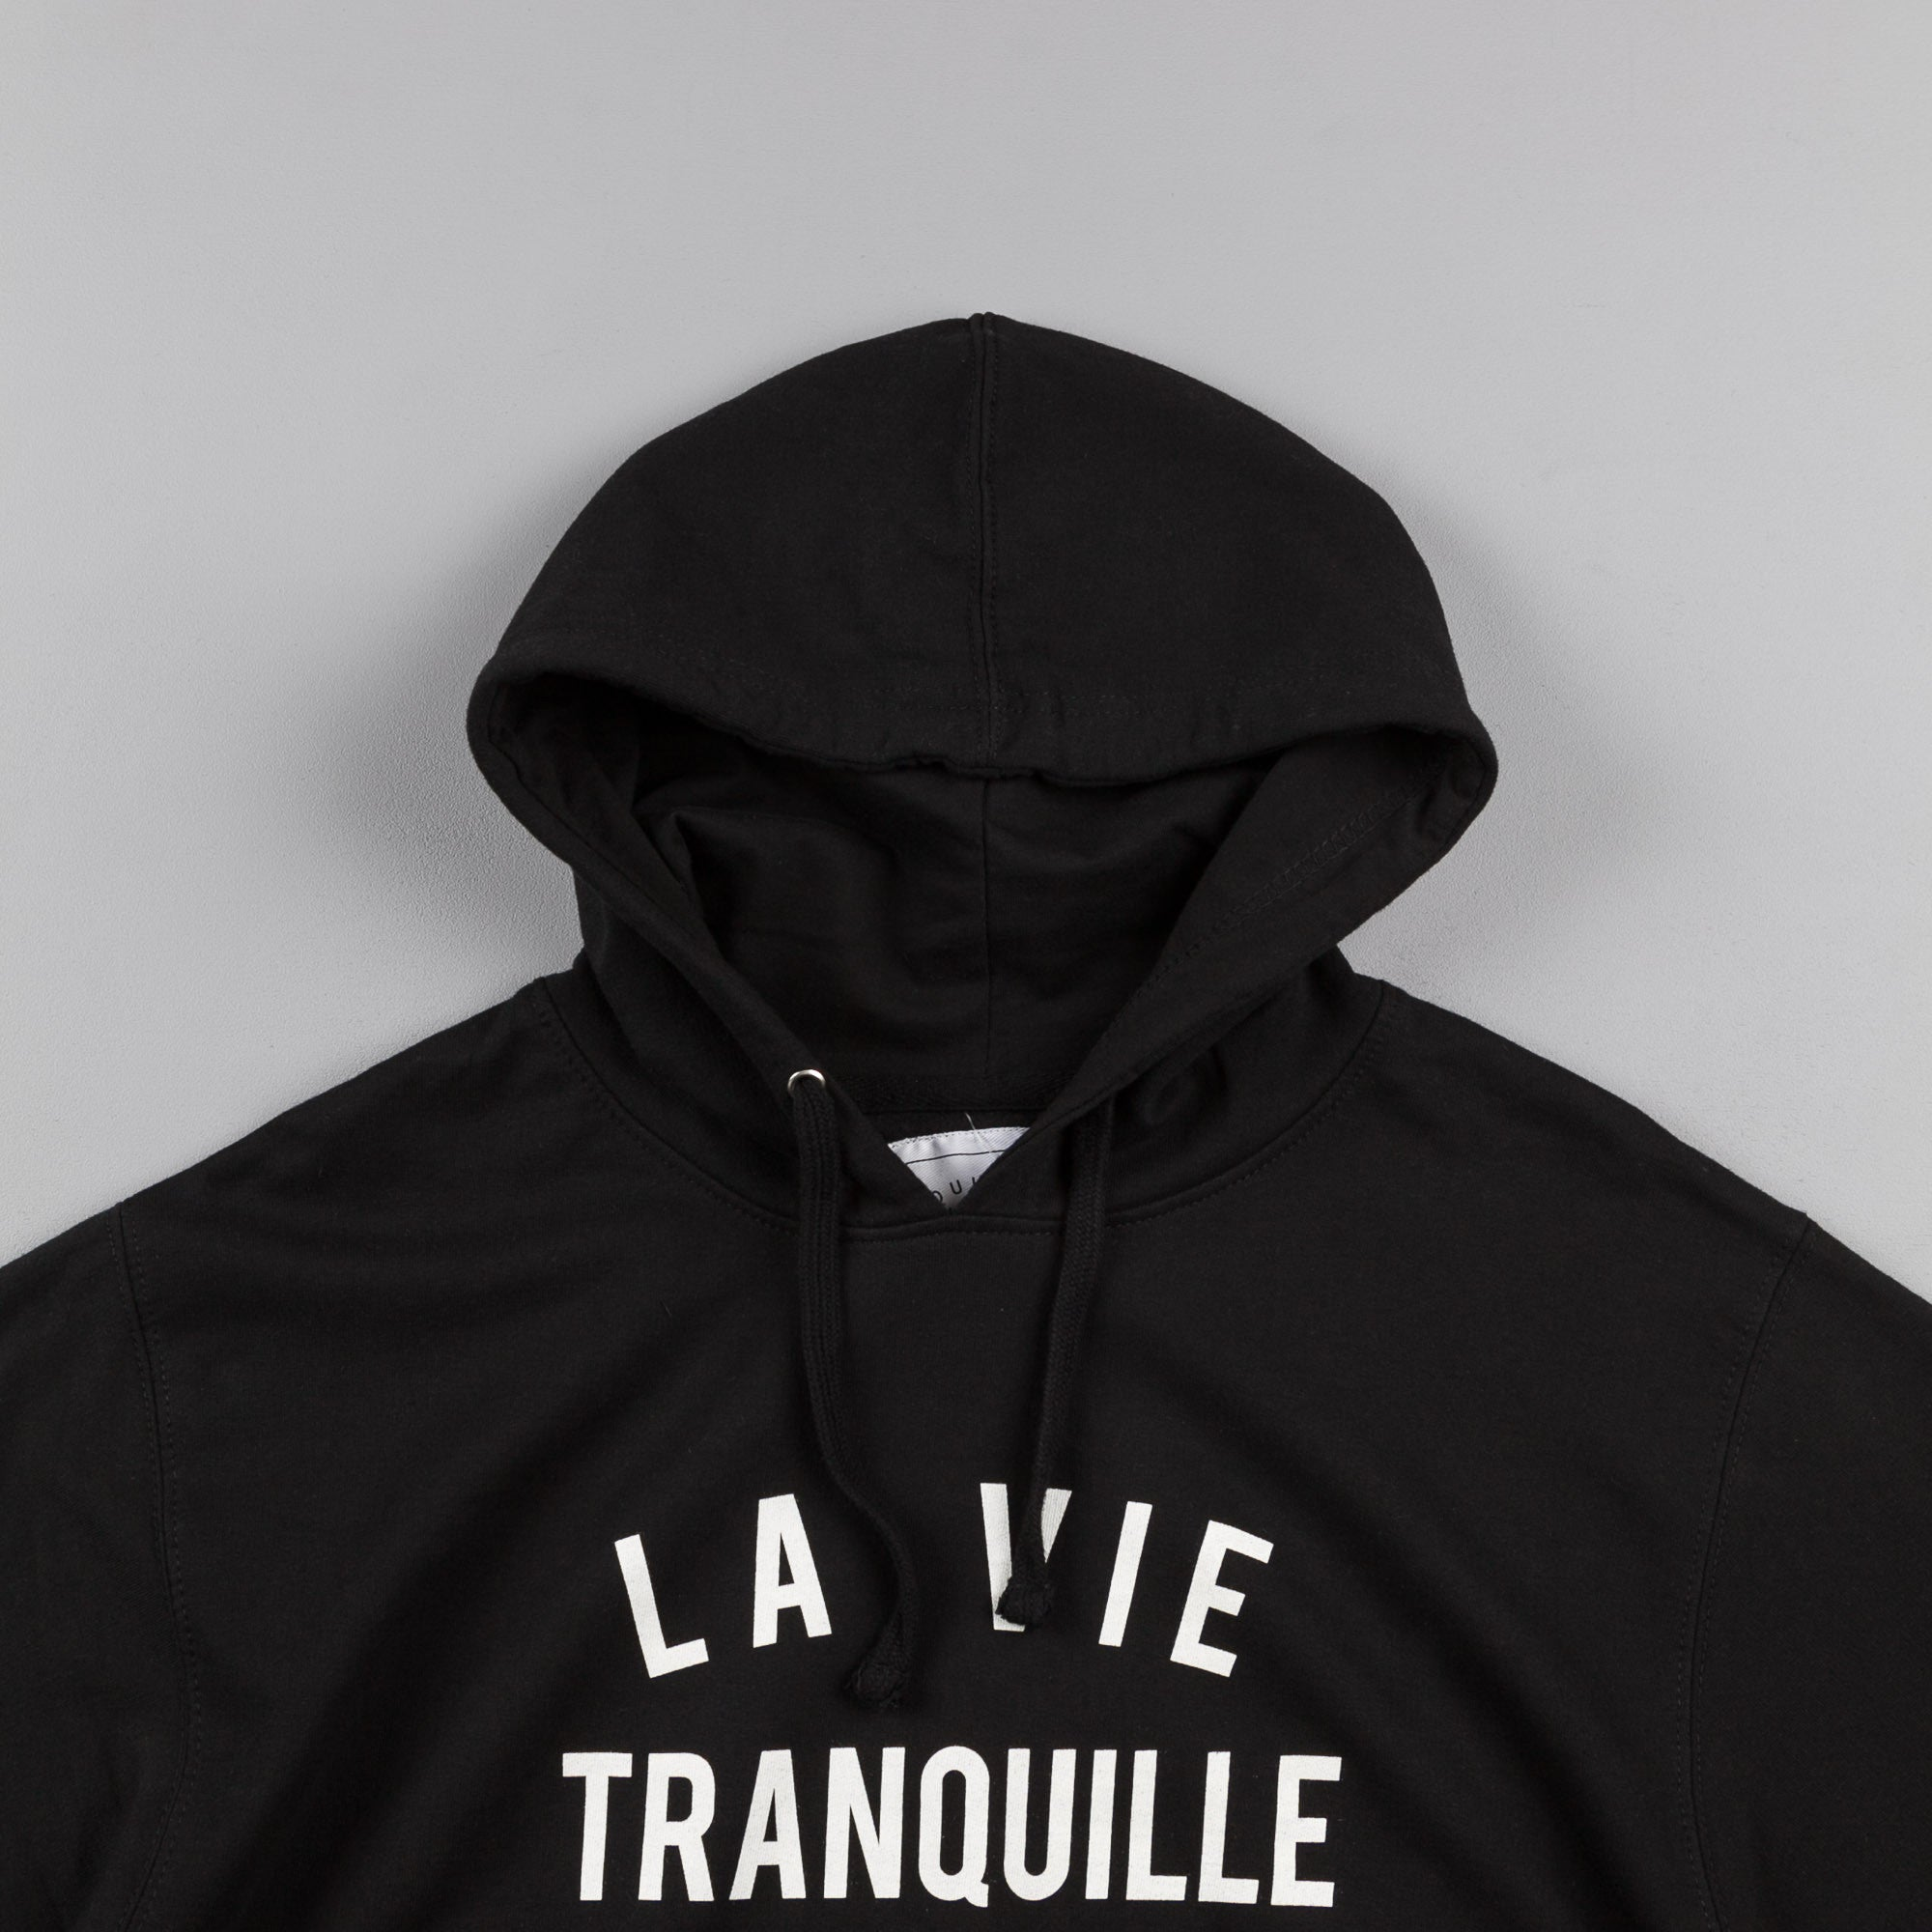 The Quiet Life La Vie Tranquille Hooded Sweatshirt - Black